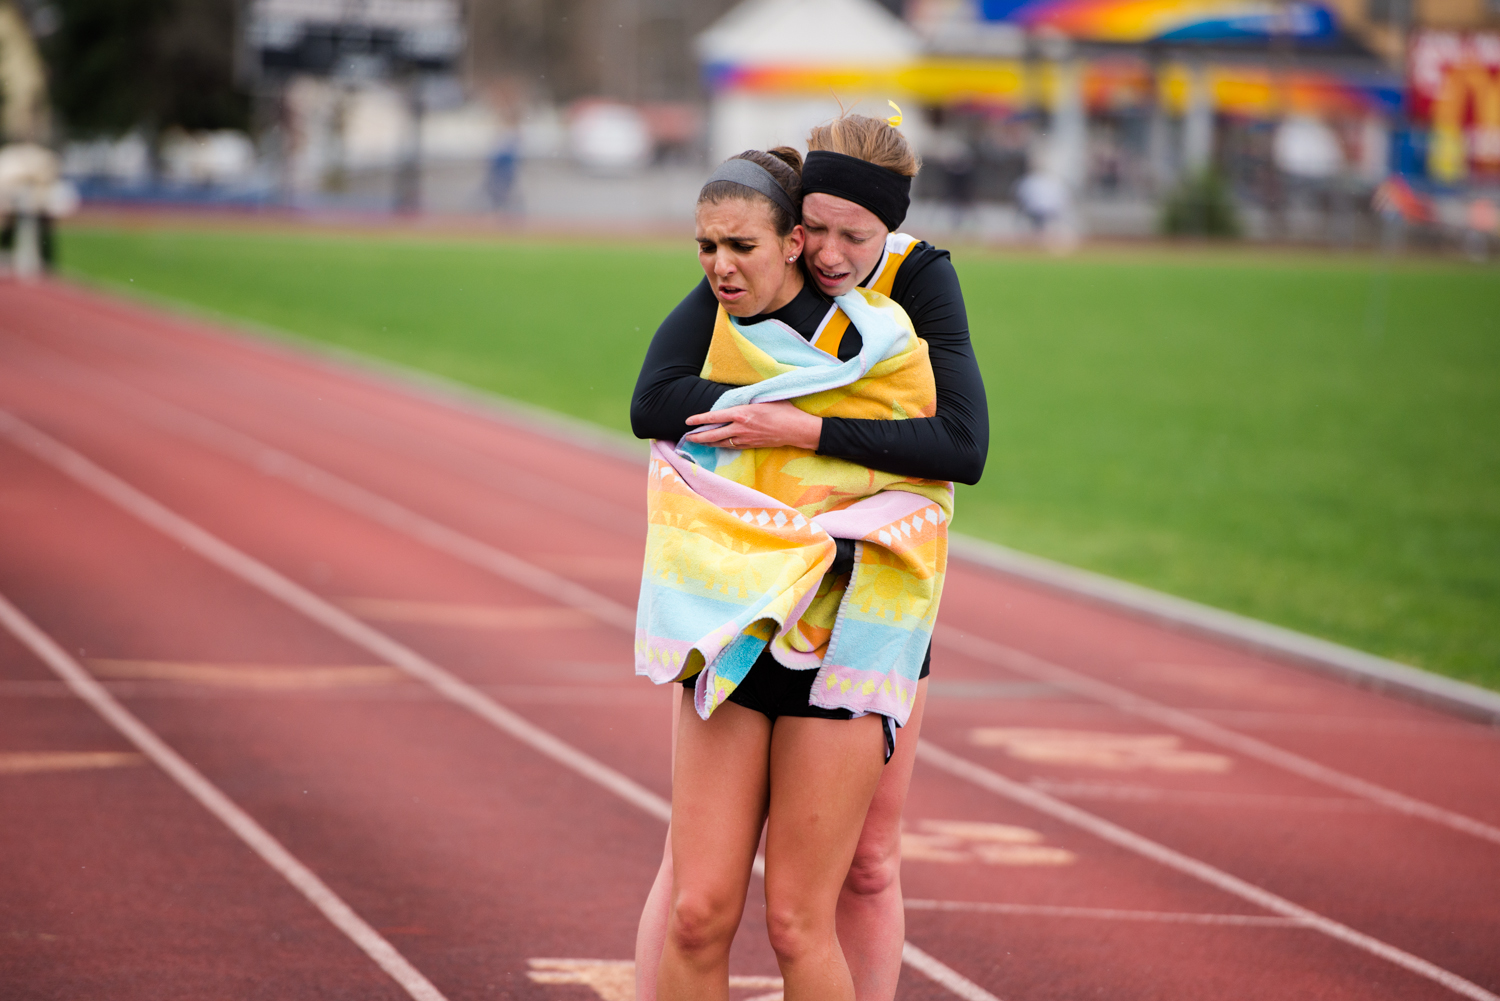 Two Geneva runnerscommiserate together after completing the steeplechase event.